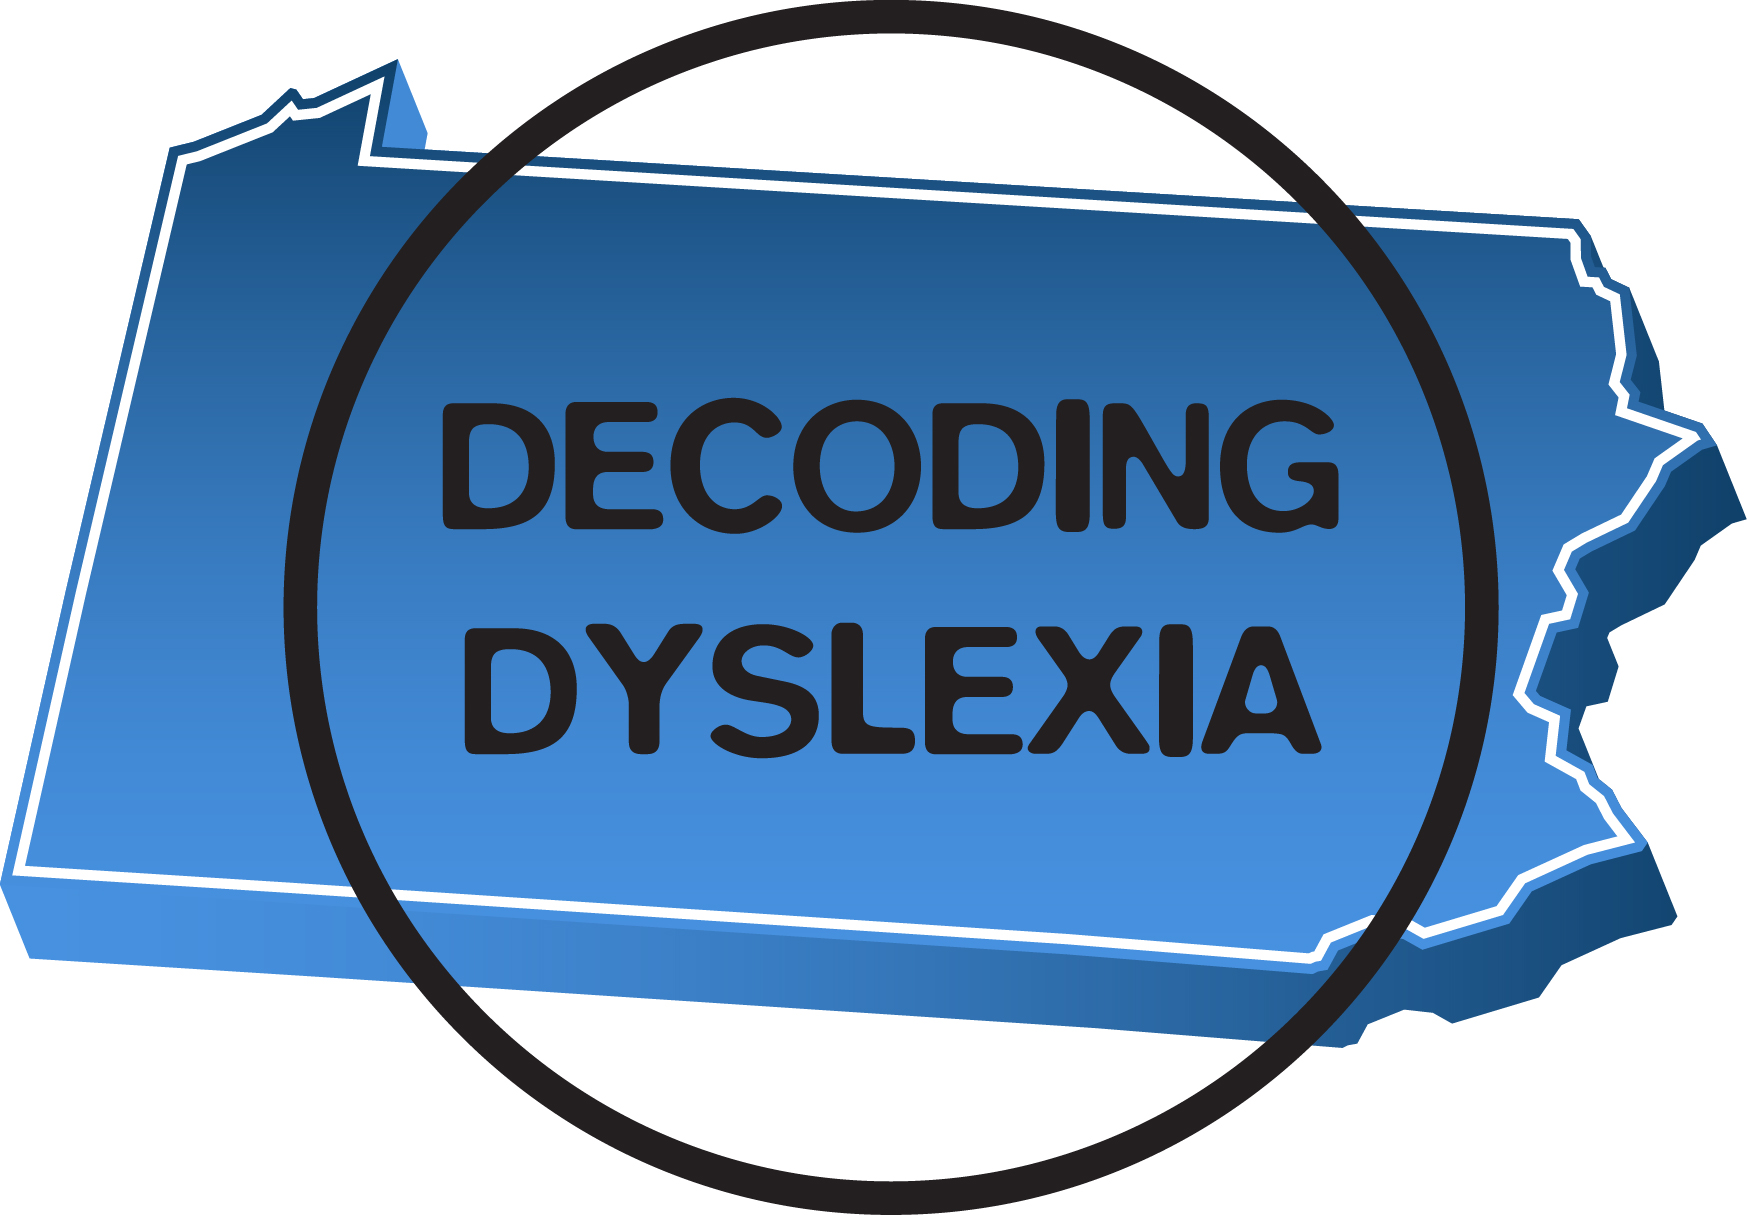 Decoding Dyslexia Pennsylvania - I Am Dyslexia